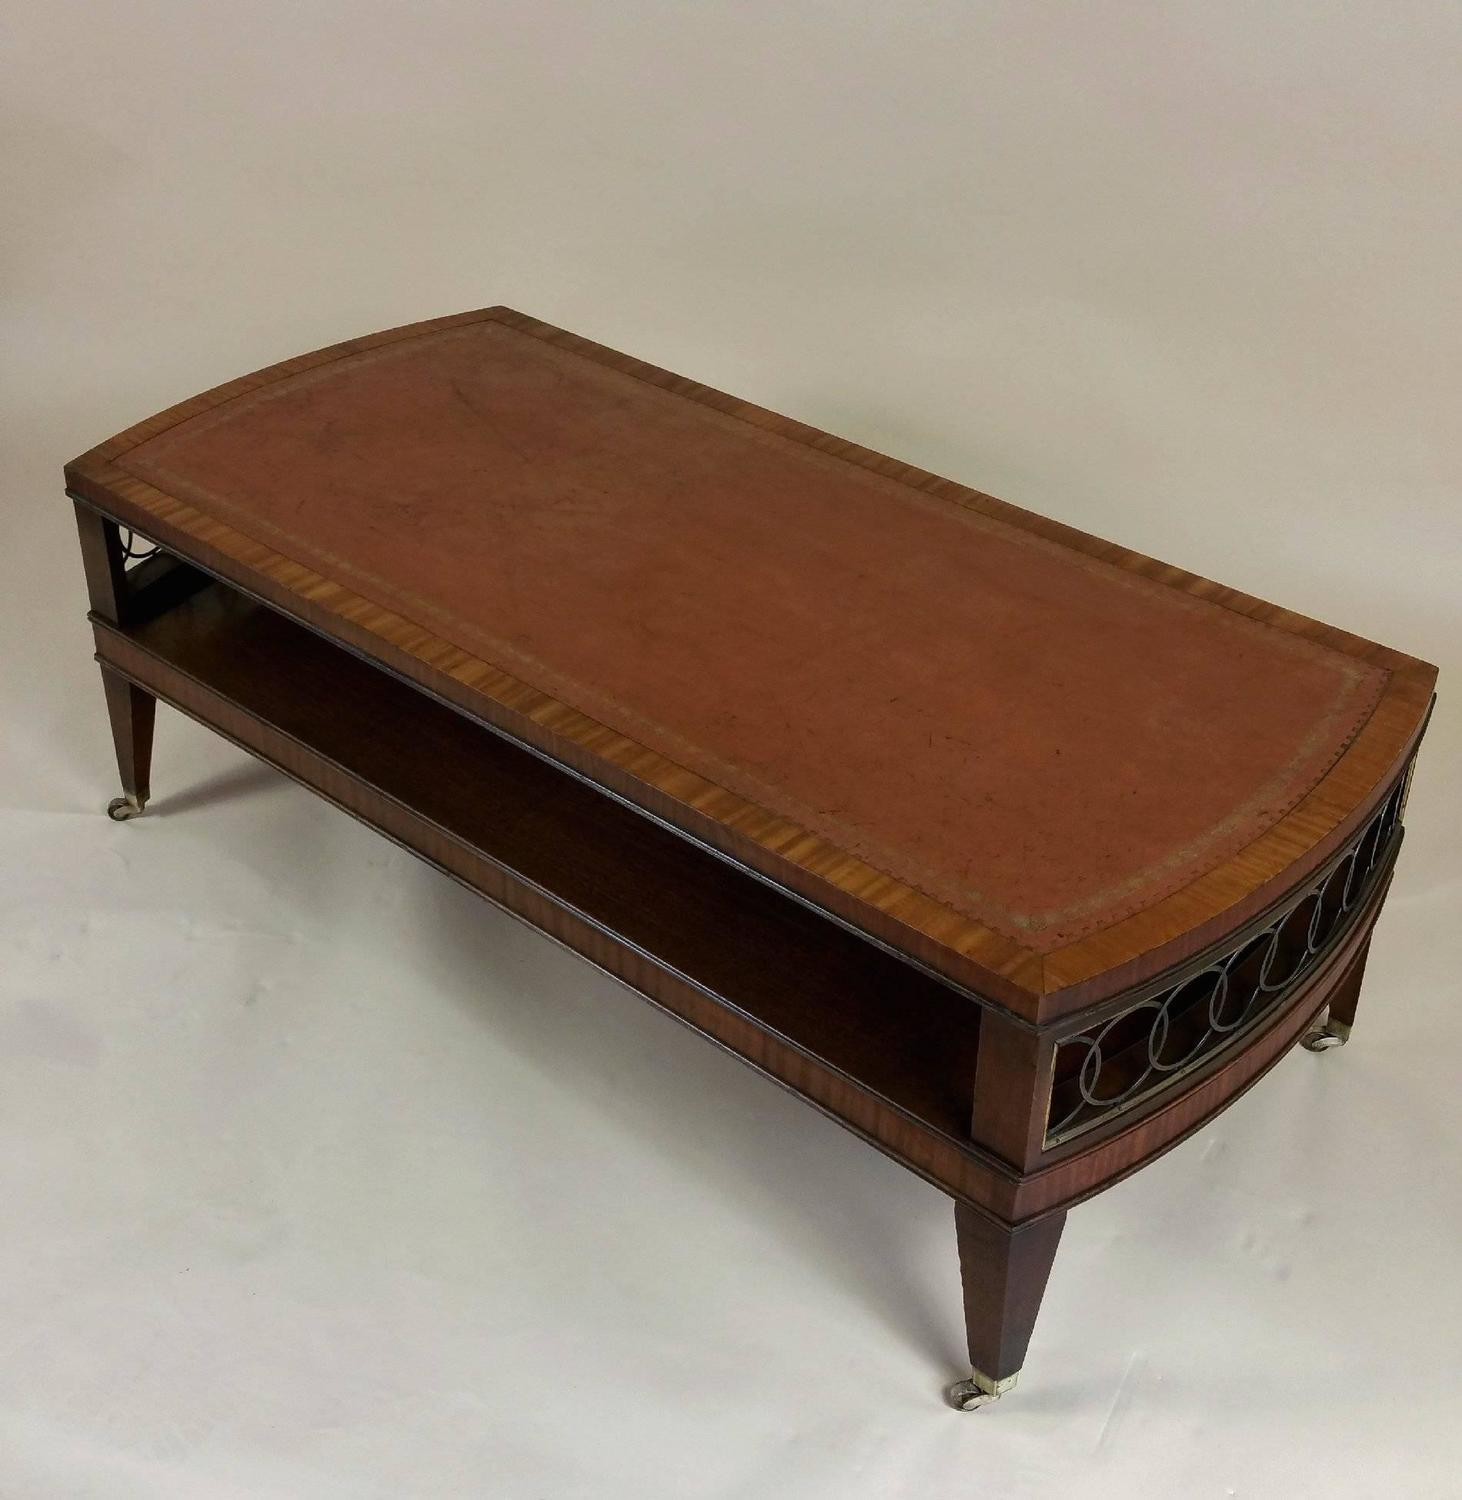 Coffee Table With Leather Top: Art Deco Mahogany Satinwood Coffee Table With Leather Top